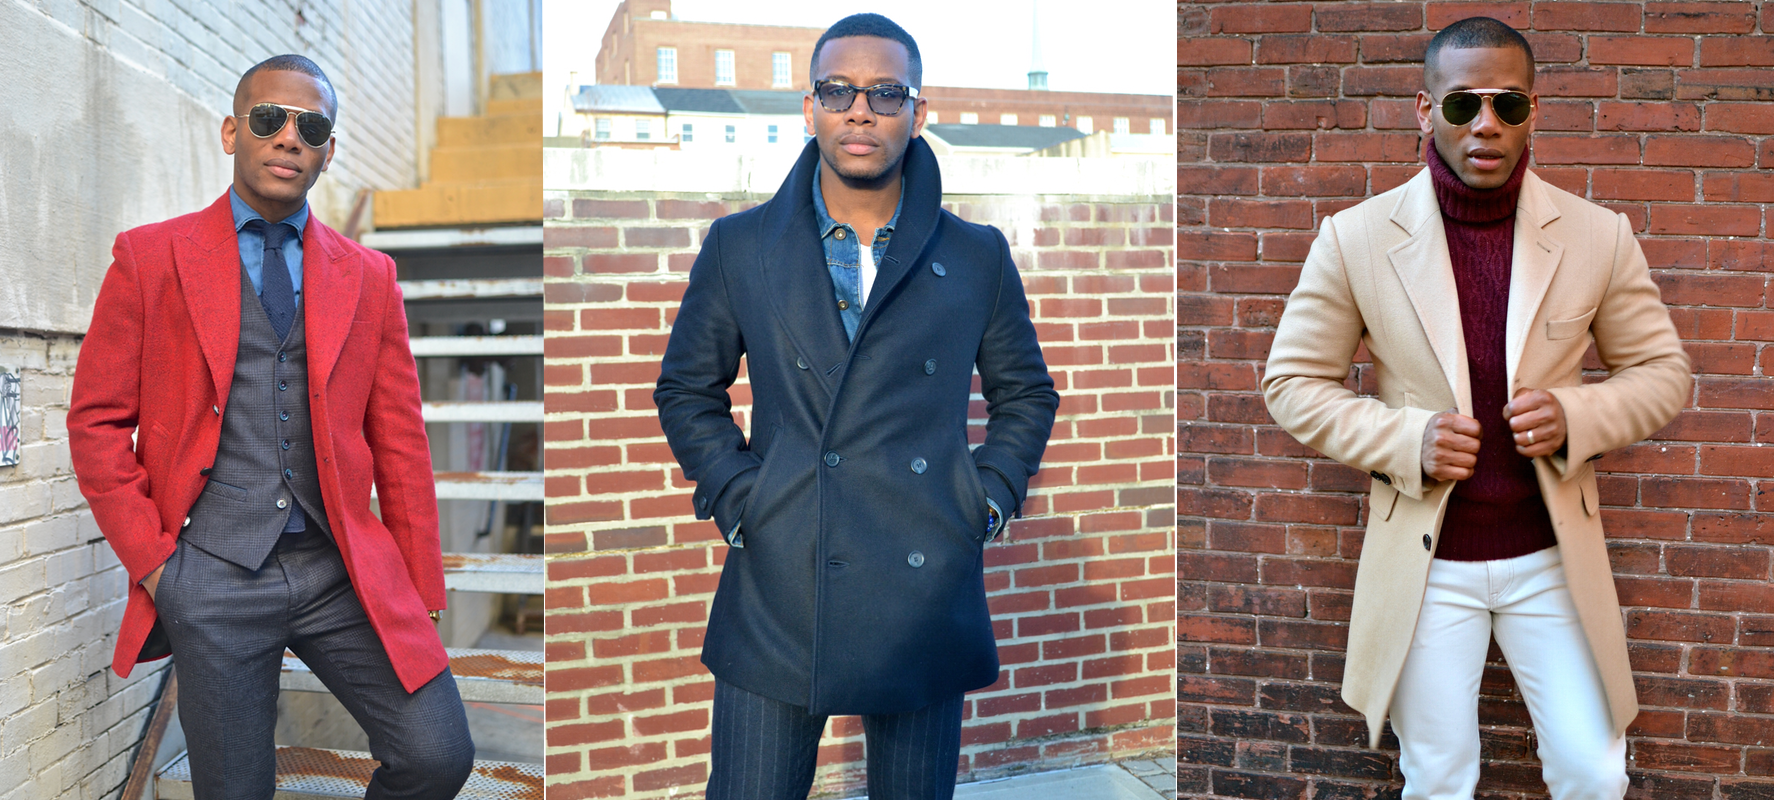 Men's Topcoats via Men's Style Pro